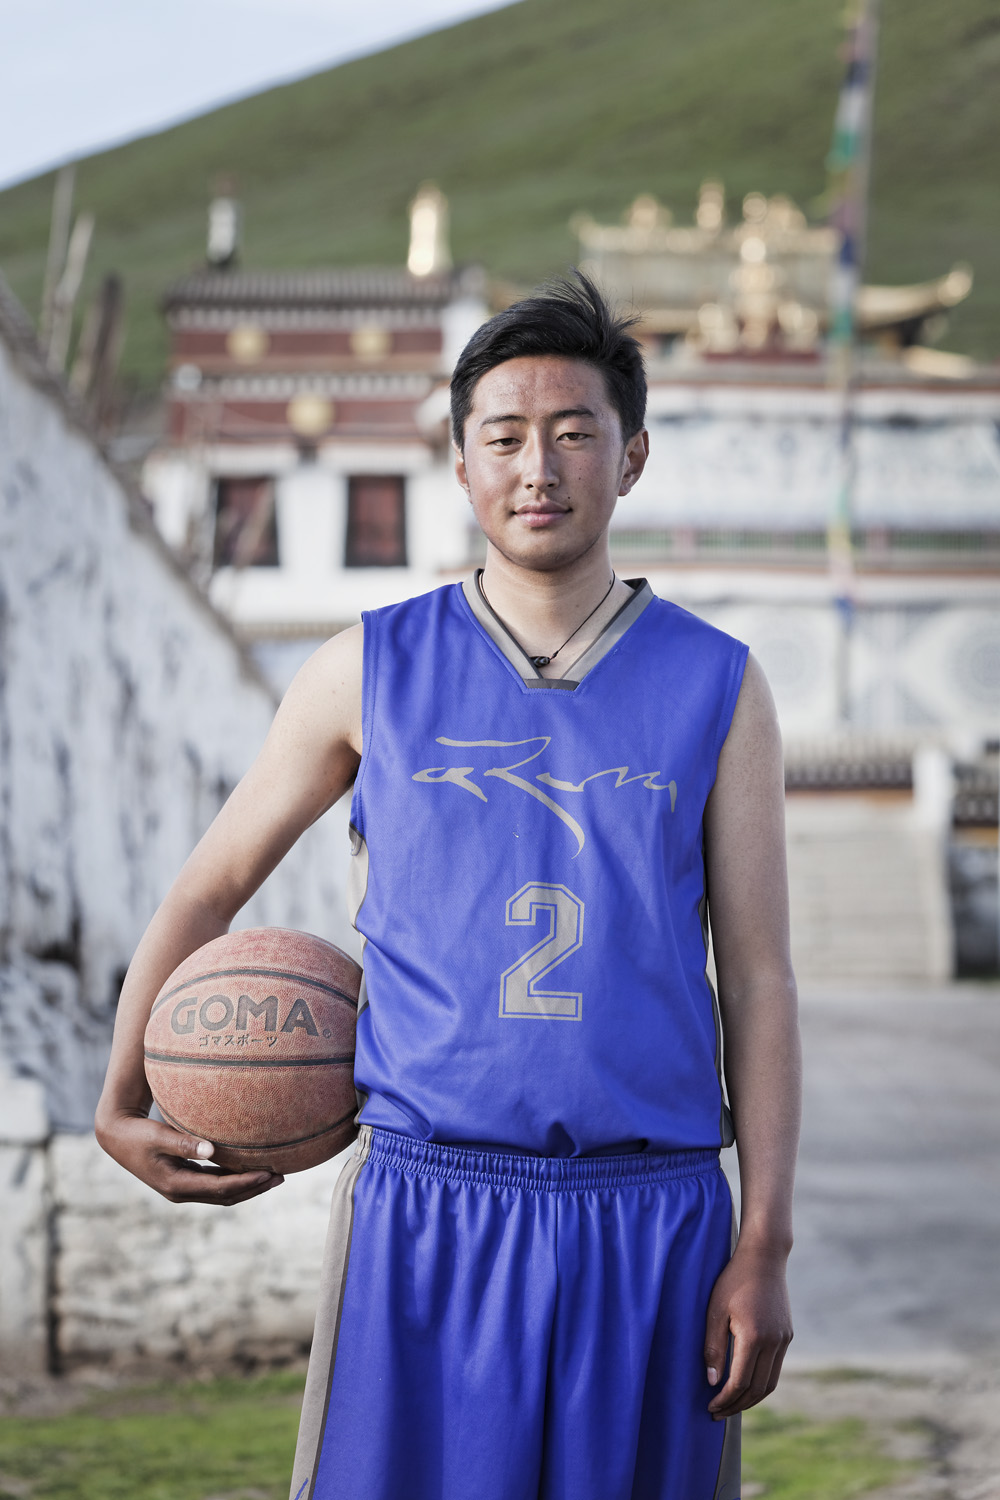 Korchan Jyap འཁོར་ཆེན་སྐྱབས། - Nomad, brother is a basketball-playing monk at local Monastery, from the White Horse clan